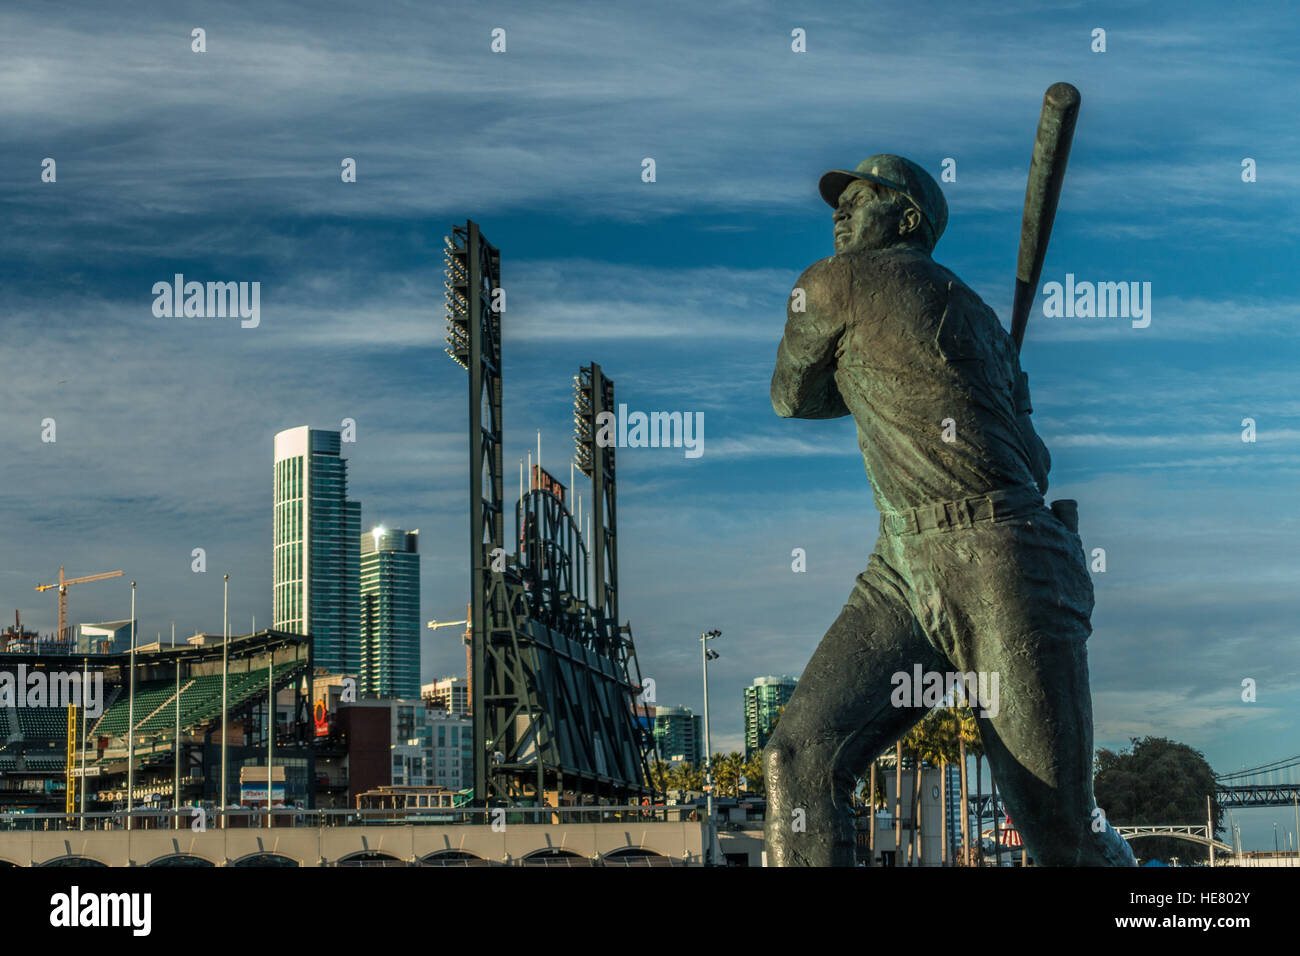 Statue of Willie McCovey along San Francisco Giants stadium, AT&T Park - Stock Image